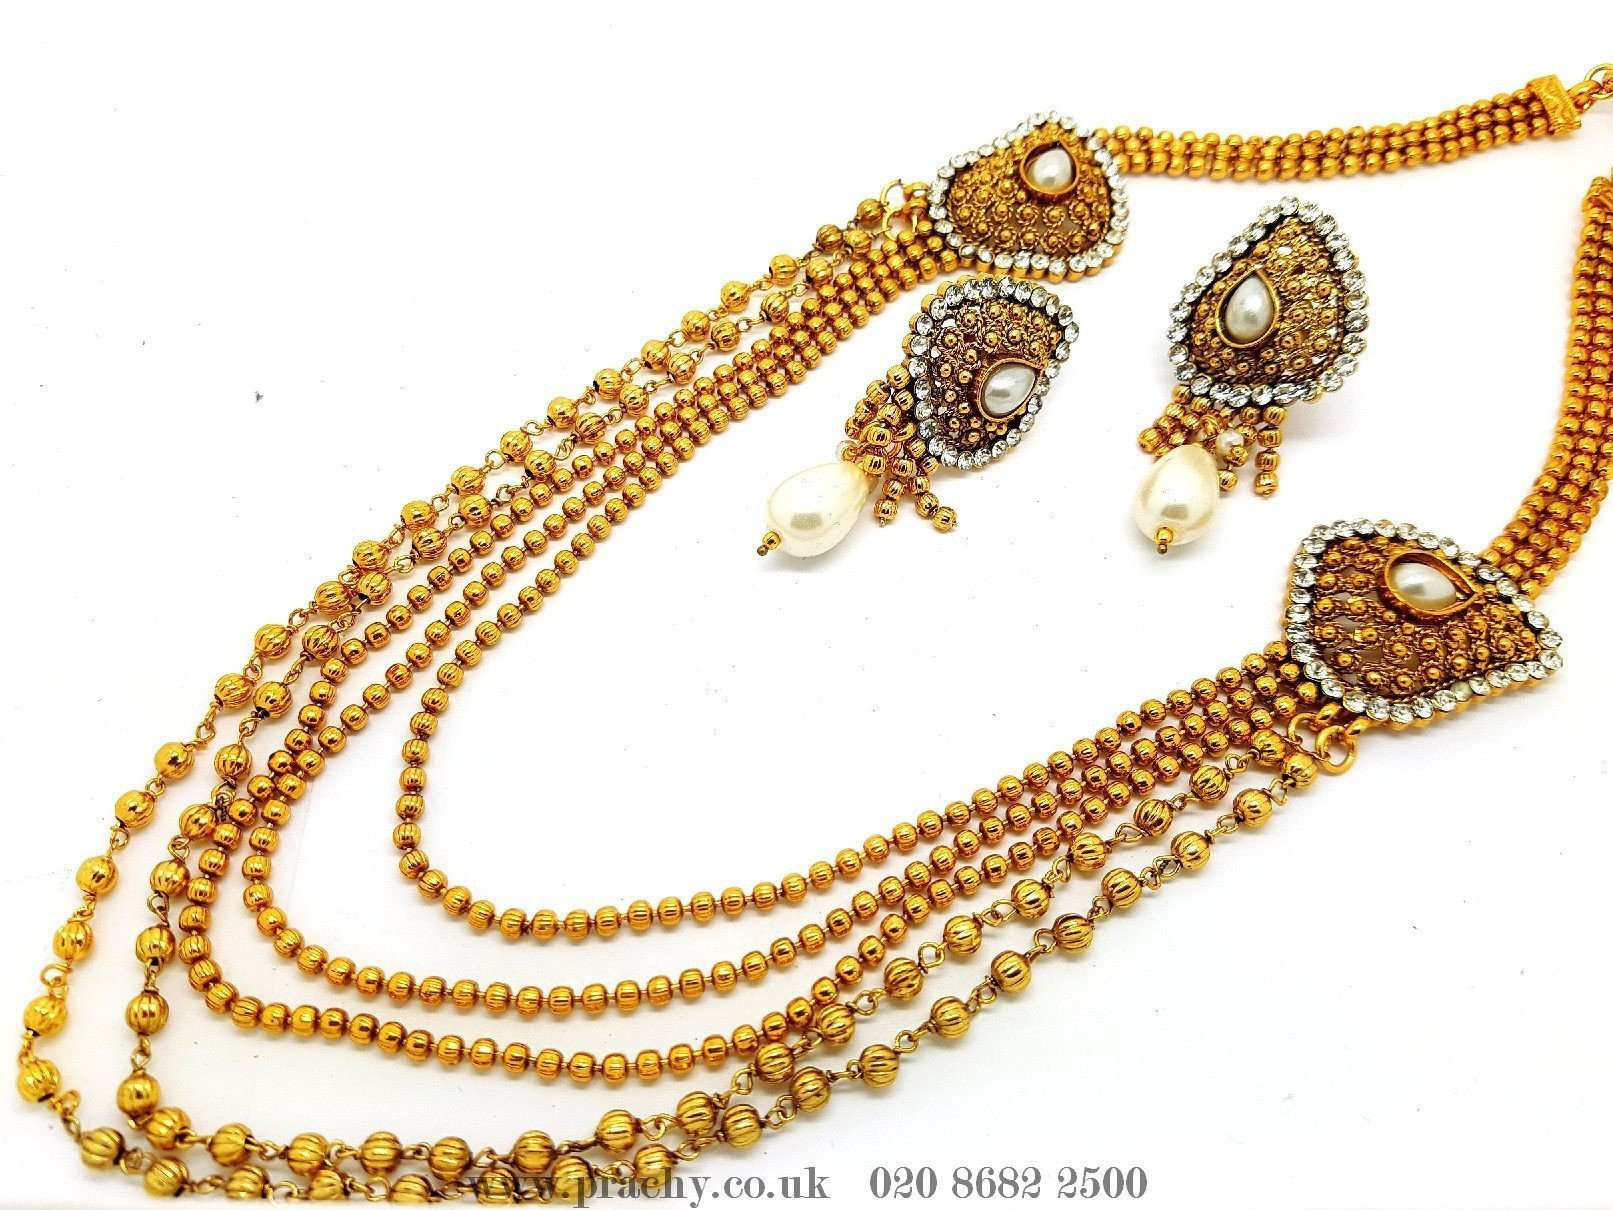 DJ 22216 - Long necklace set - KA 0916 - Prachy Creations